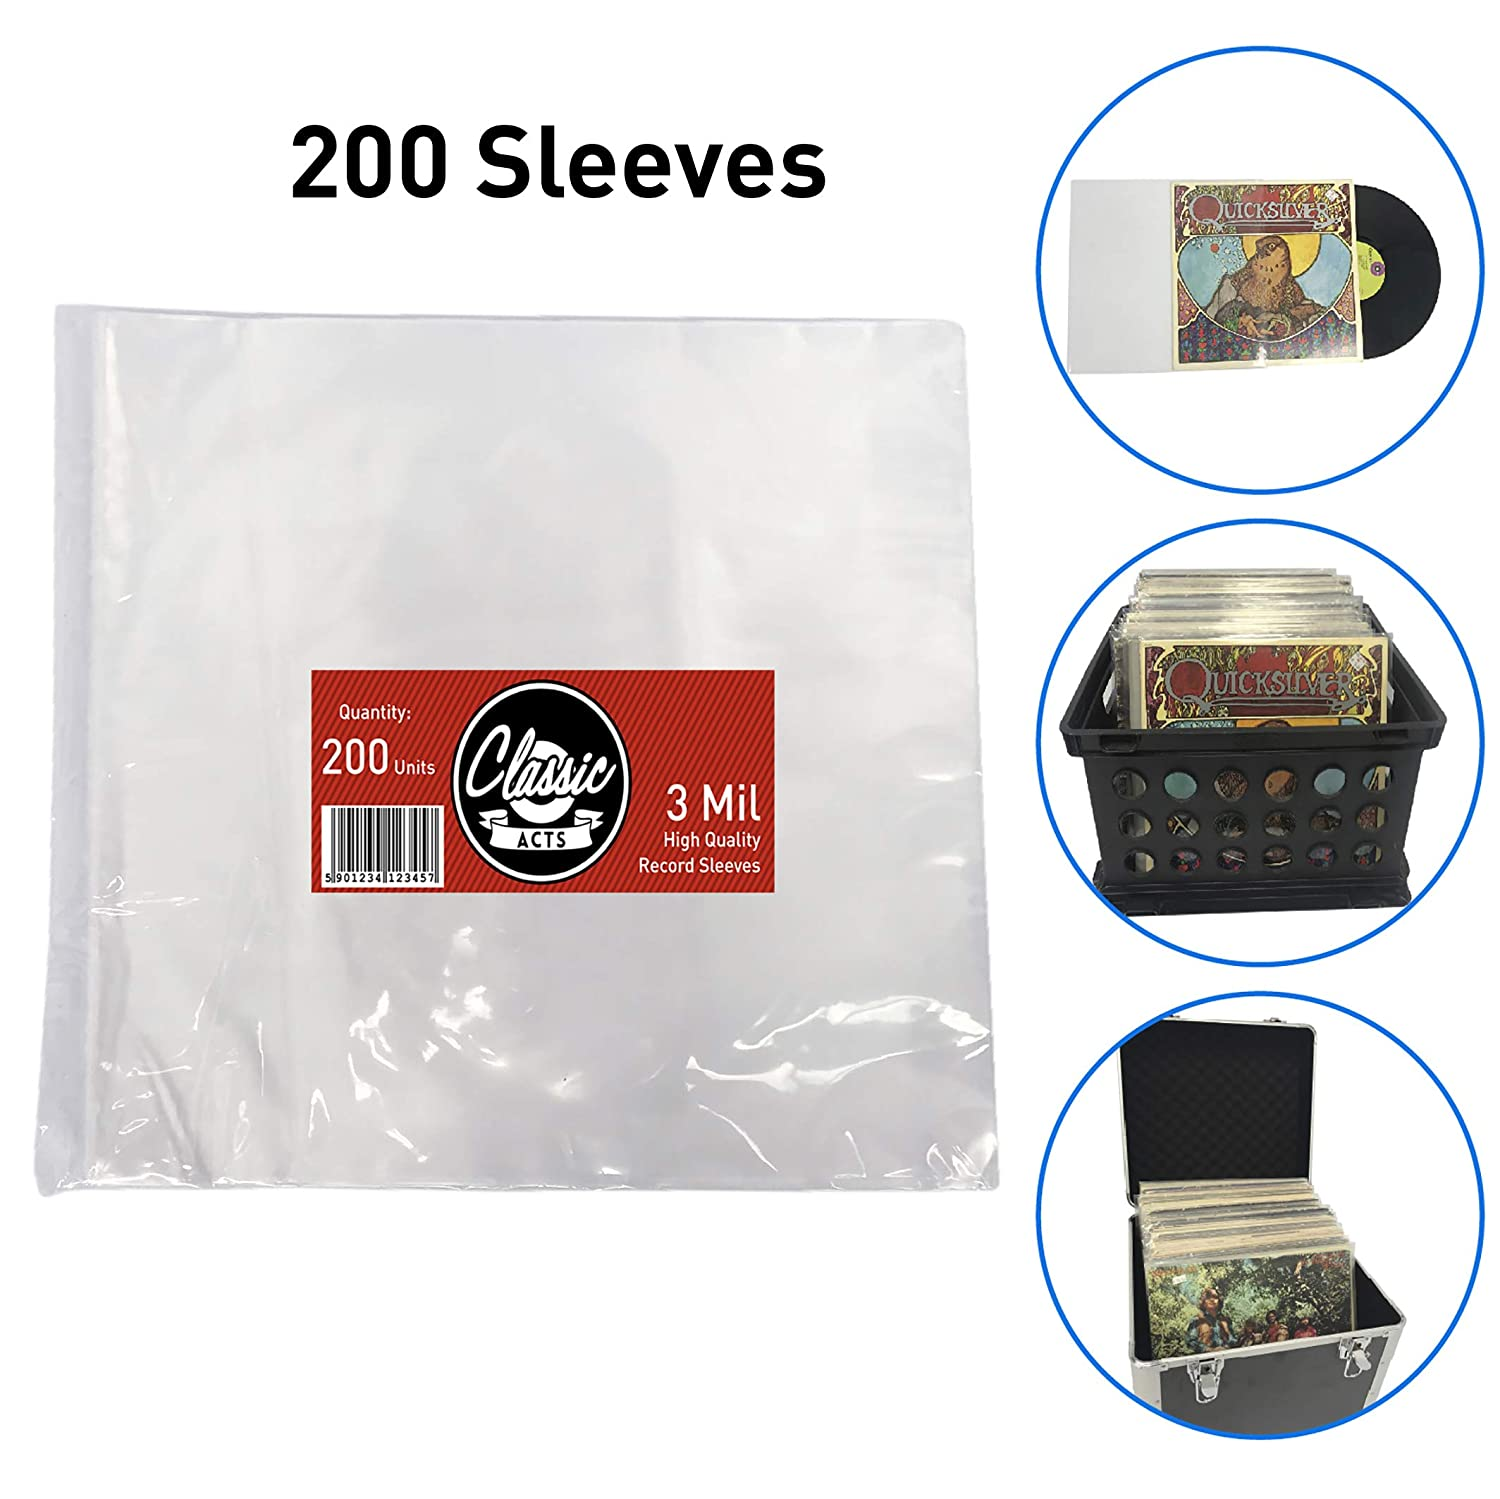 "Classic Acts Vinyl Record Sleeves Protect Your Album Covers - LP Sleeves Fit Single and Double Albums – Size: 12.5"" X 12.75"" - 3 Mil Thick (200 Pack) EasyGo Products EGP-SLV-004"